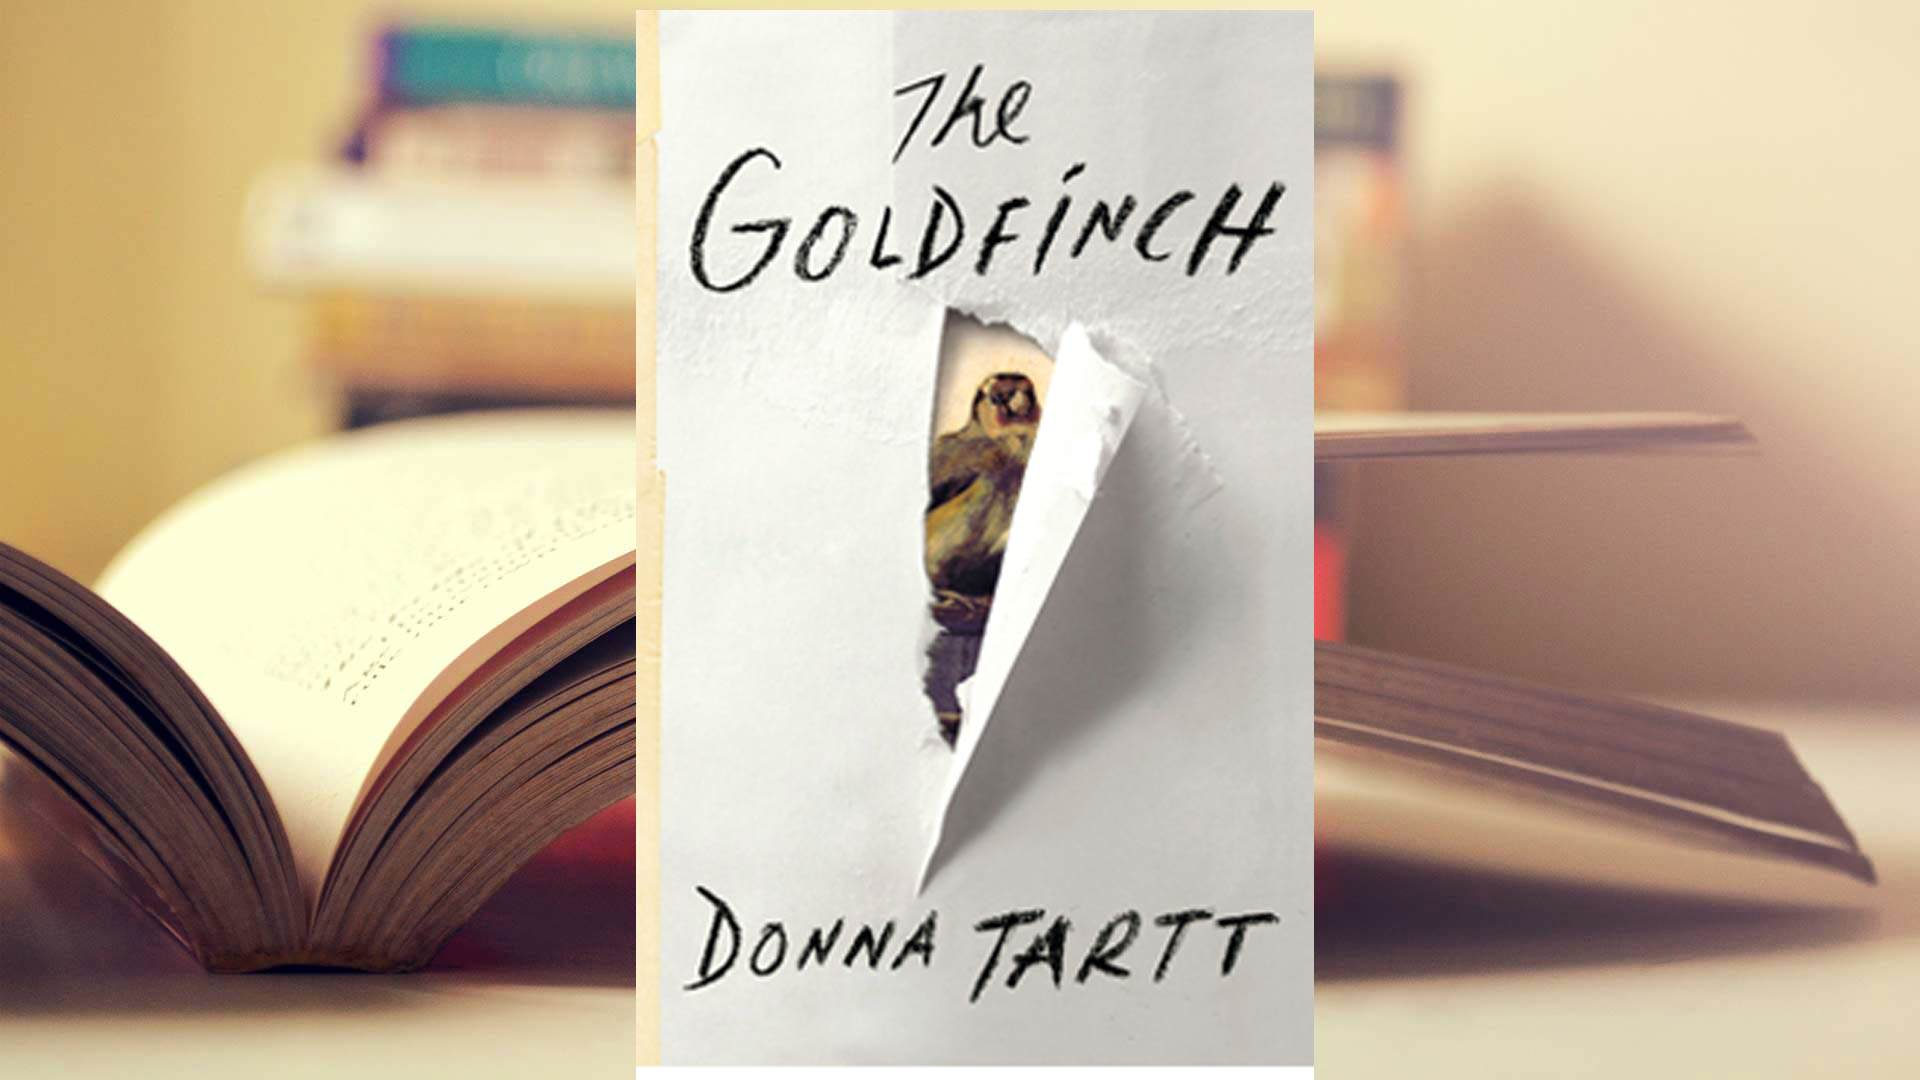 BOOK REVIEW: THE GOLDFINCH BY DONNA TART